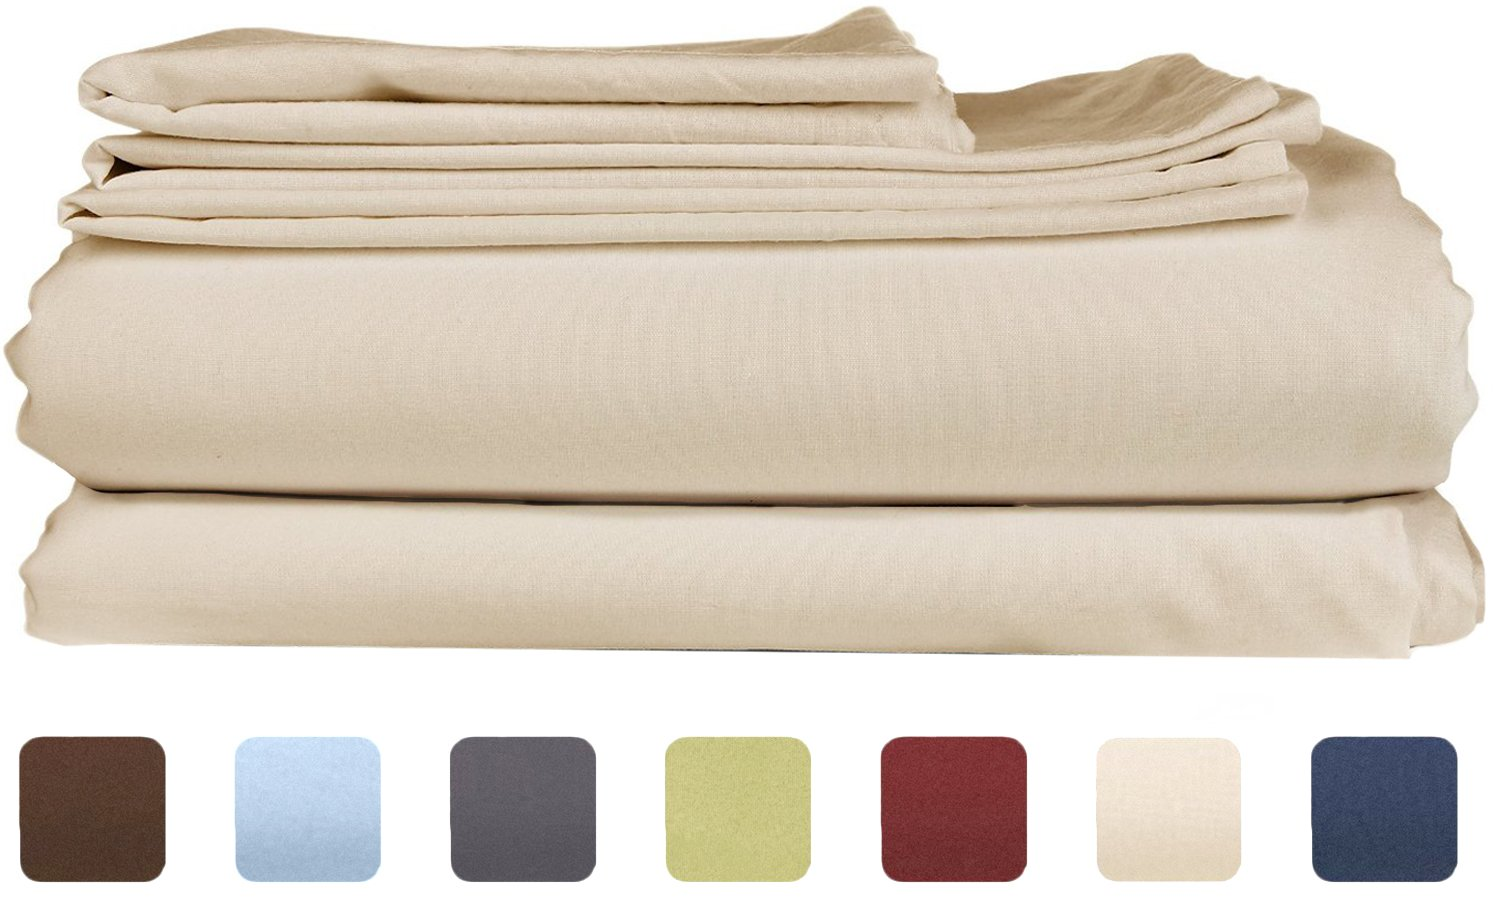 King Size Sheet Set - 6 Piece Set - Hotel Luxury Bed Sheets - Extra Soft Beige Bed Sheets